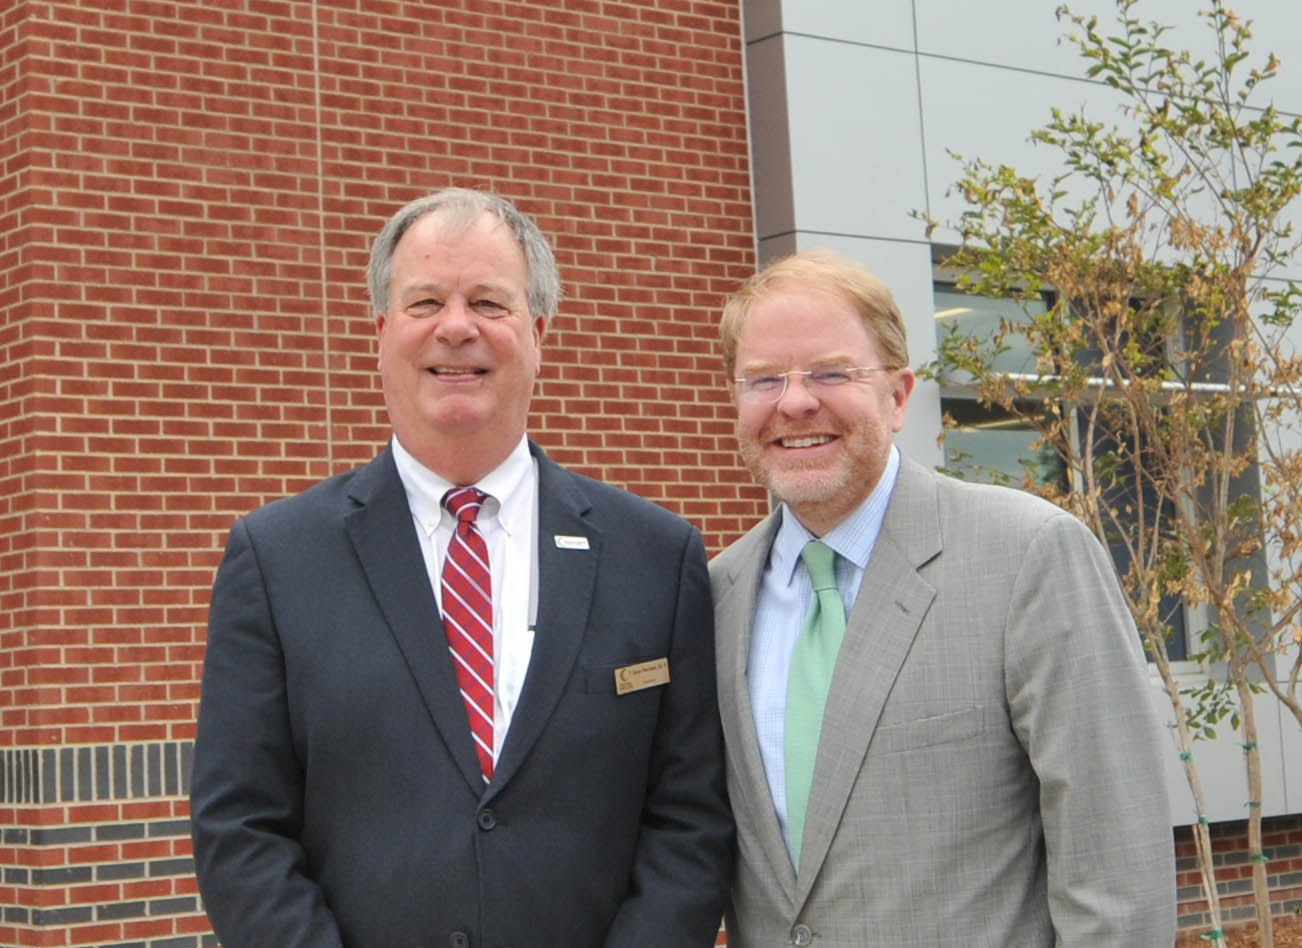 Click to enlarge,  Central Carolina Community College President Dr. T.E. Marchant (left) visits with N.C. Community College System President Peter Hans at the CCCC Grand Celebration for the opening of the new Oscar A. Keller Jr. and Elderlene R. Keller Health Sciences Building and the expansion of the Dennis A. Wicker Civic Center.